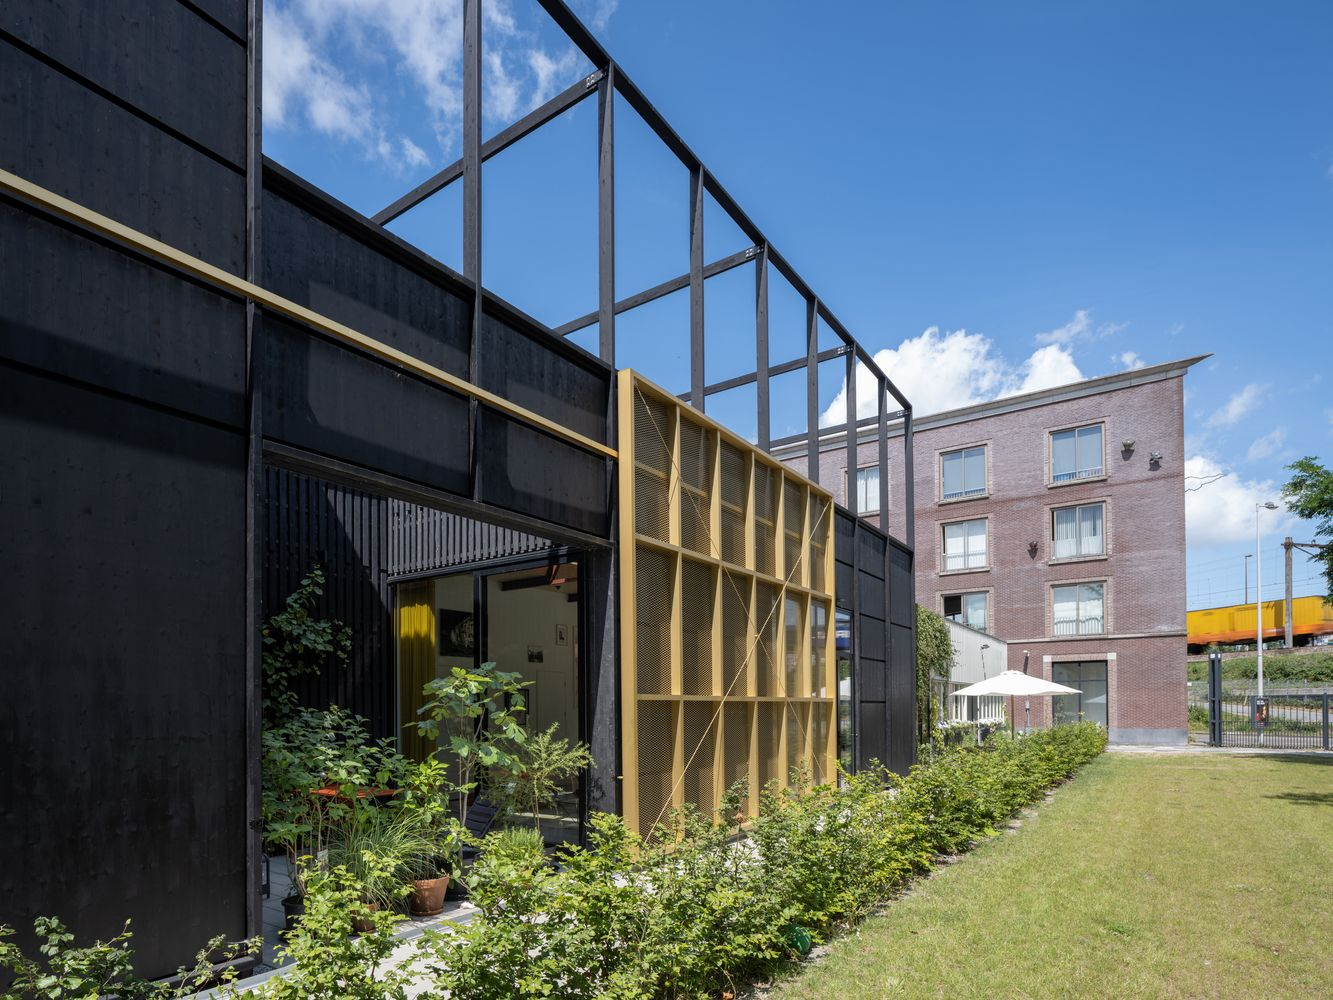 Gallery Of House M M Next Architects Claudia Linders 4 Architect Amsterdam Houses Industrial Architecture